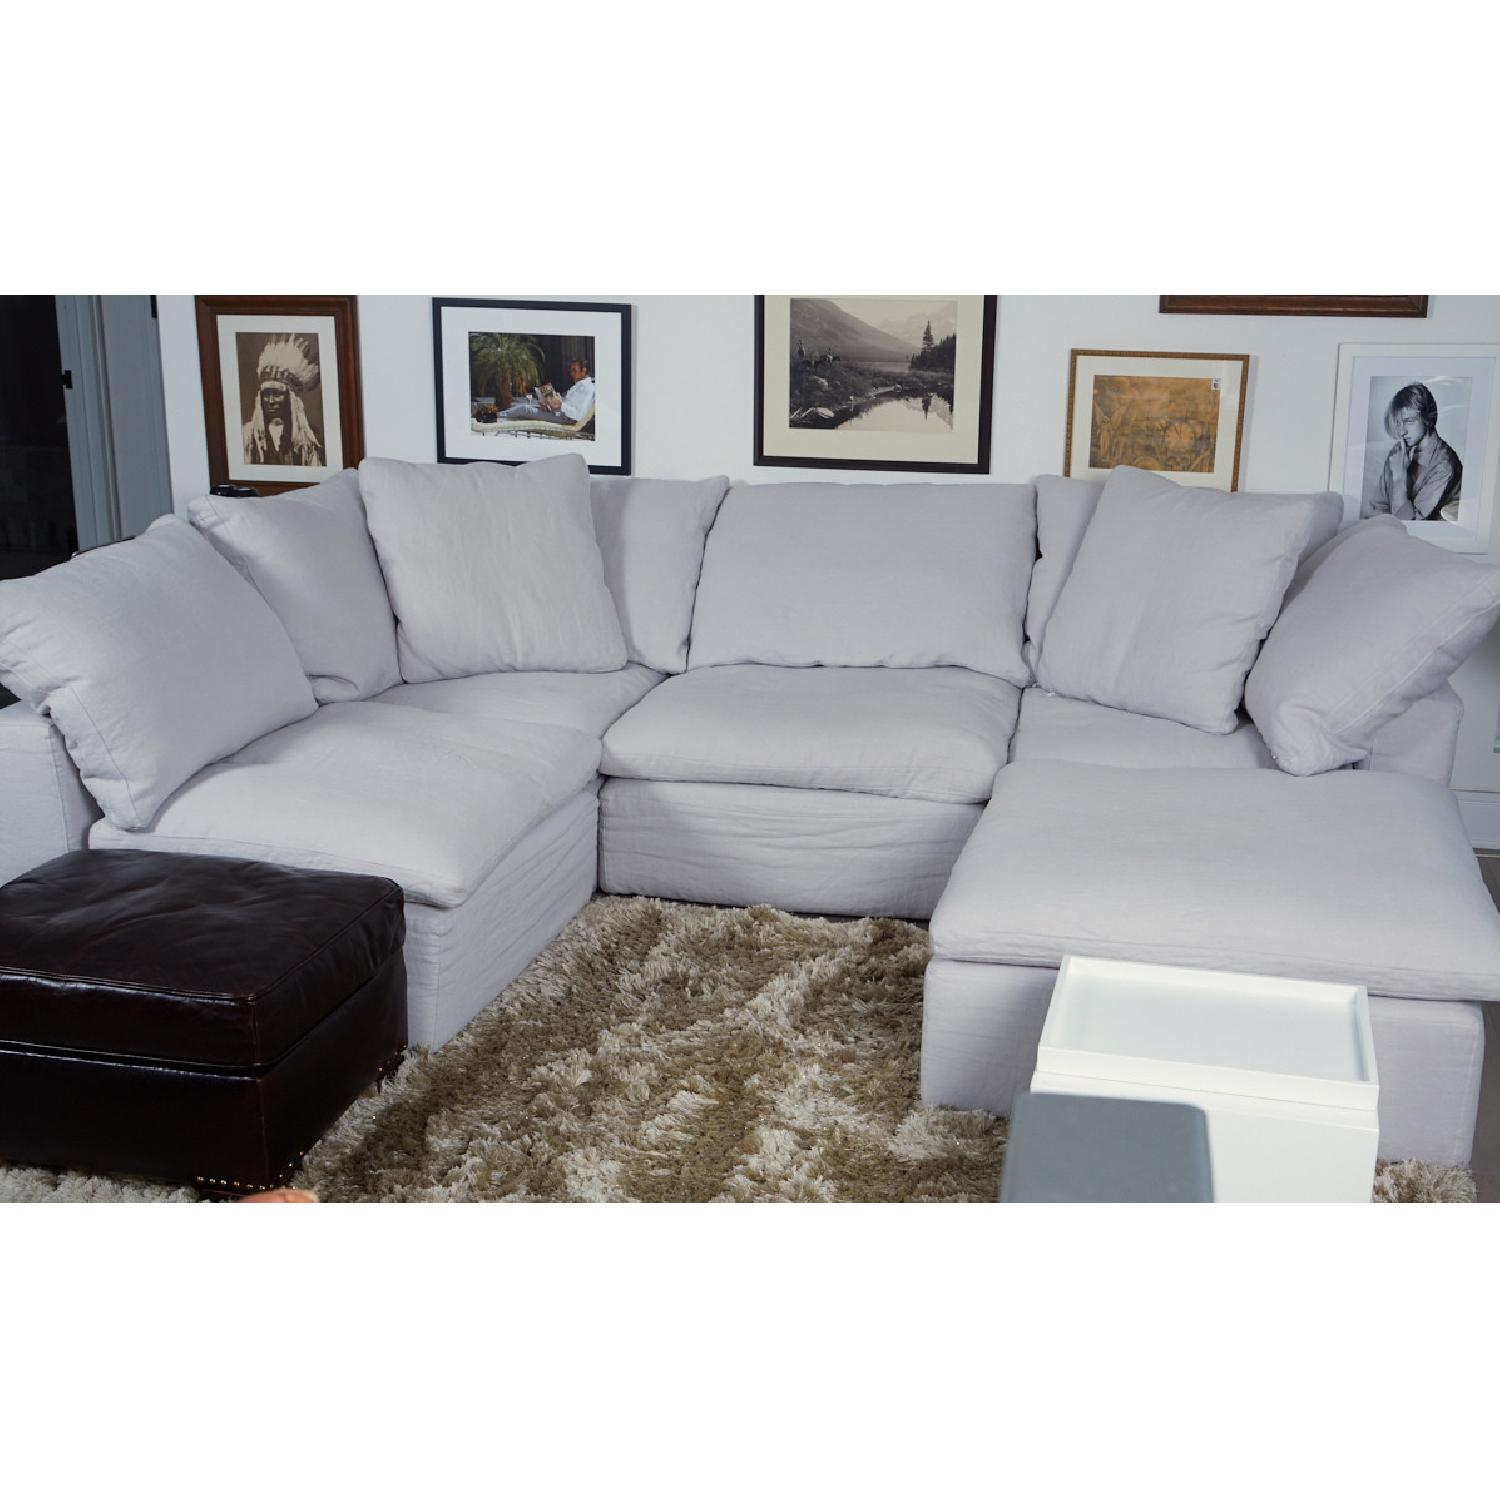 Fabulous Restoration Hardware Cloud Modular Chaise Sectional Ottoman Caraccident5 Cool Chair Designs And Ideas Caraccident5Info